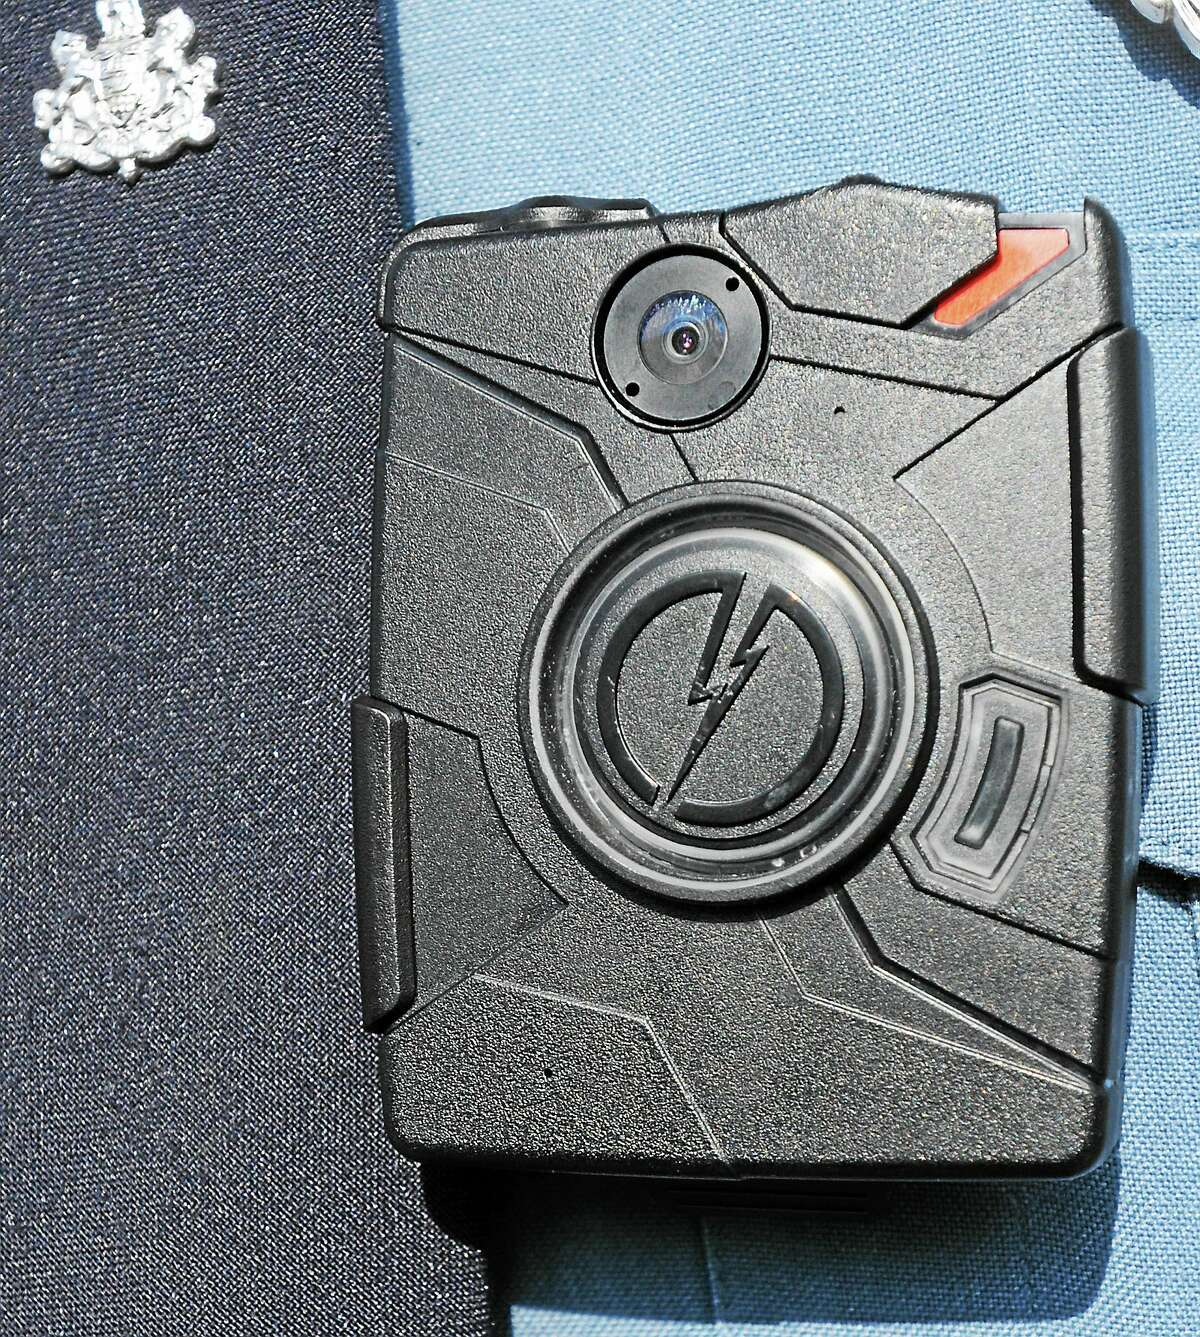 View of the body camera that some departments are using